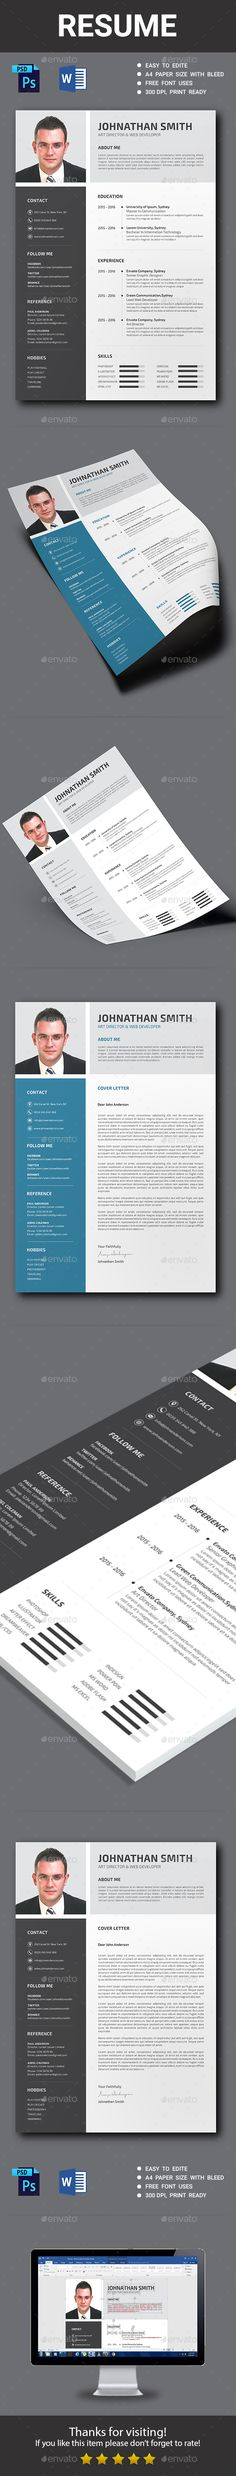 Resume Template PSD, Vector EPS, AI Download here   - resume template psd